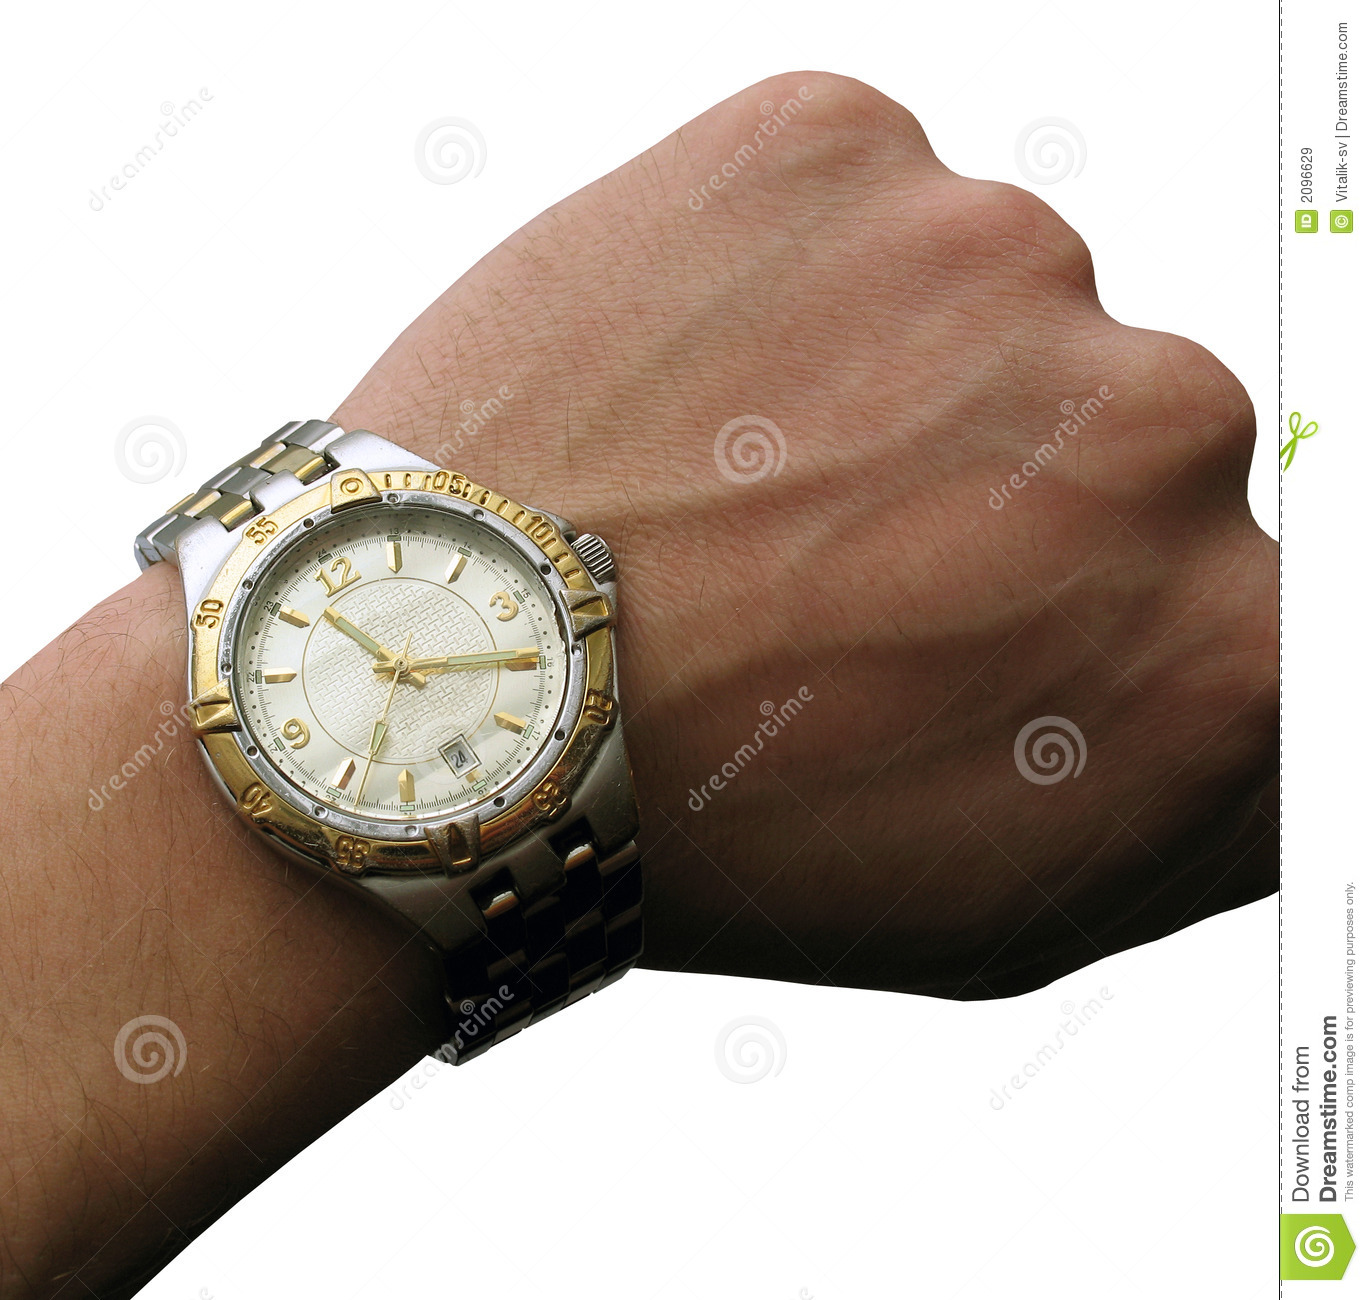 Wrist Watch On Hand Isolated Royalty Free Stock Images ...